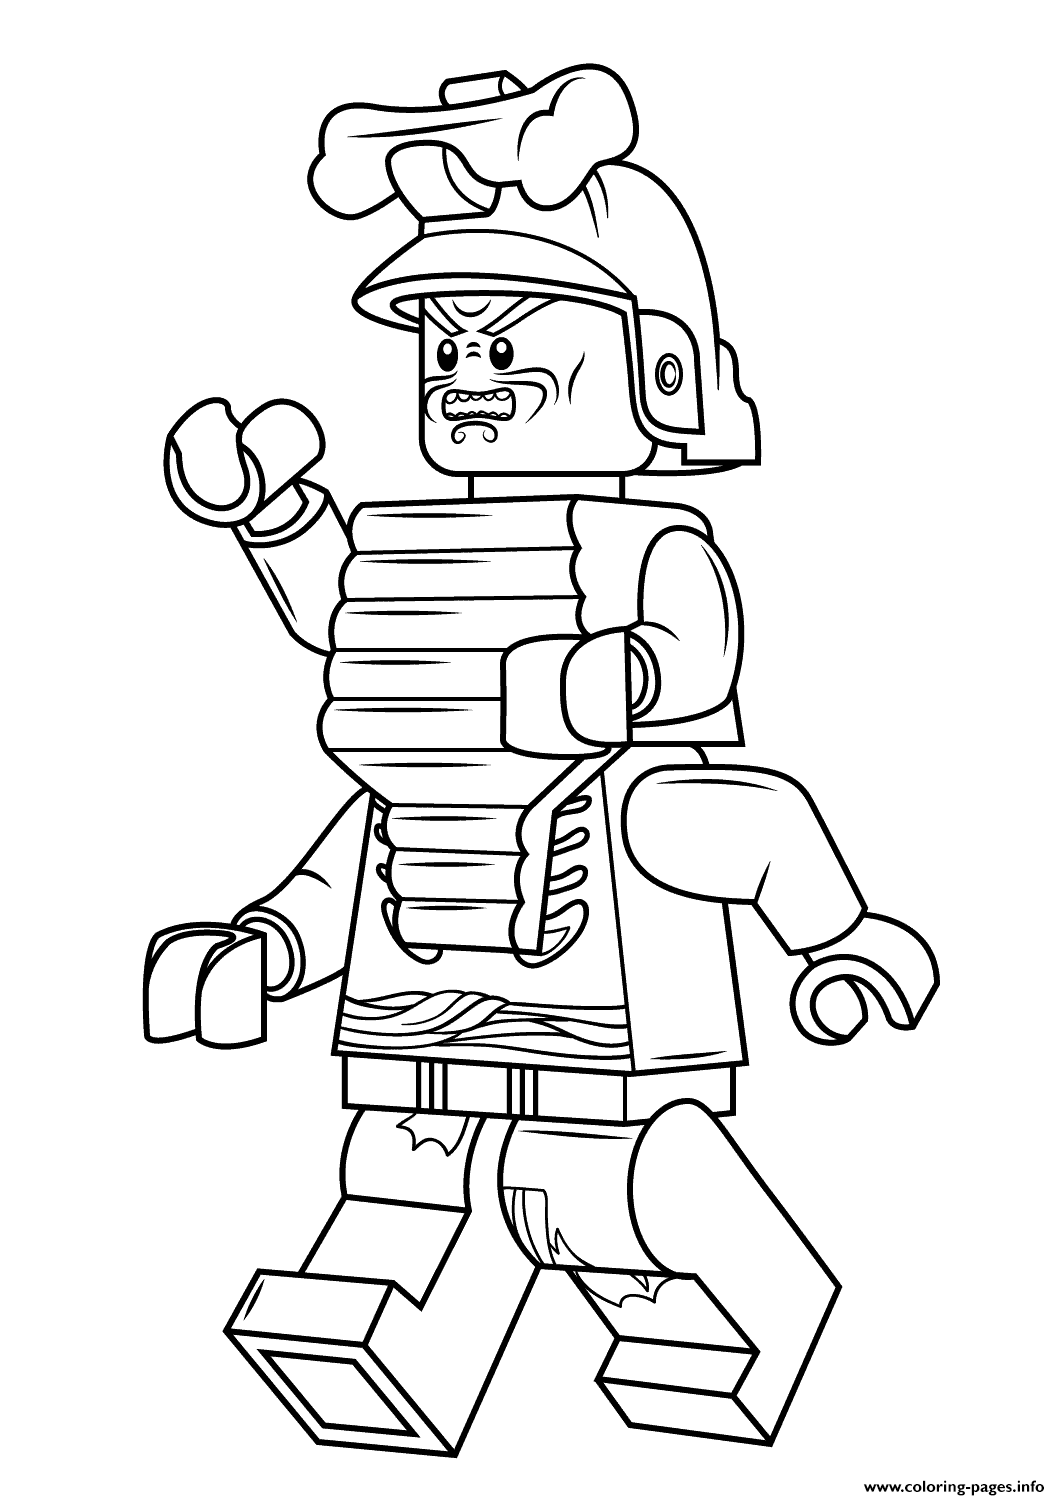 Lego Christmas Coloring Pages Lego Coloring Pages Lego Coloring Ninjago Coloring Pages